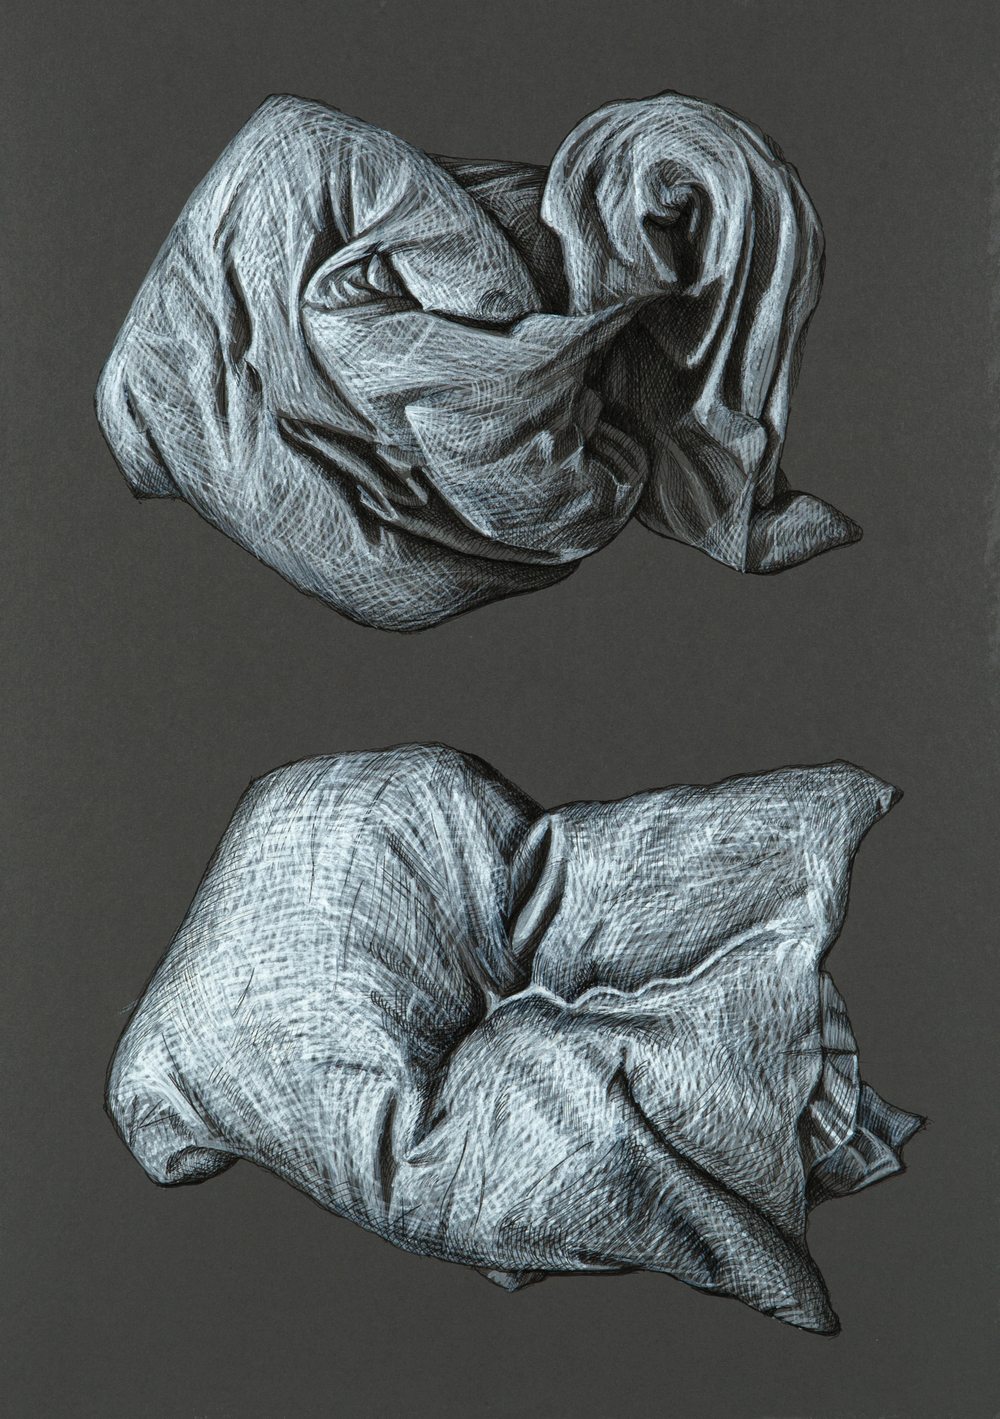 Pillow Study after Durer